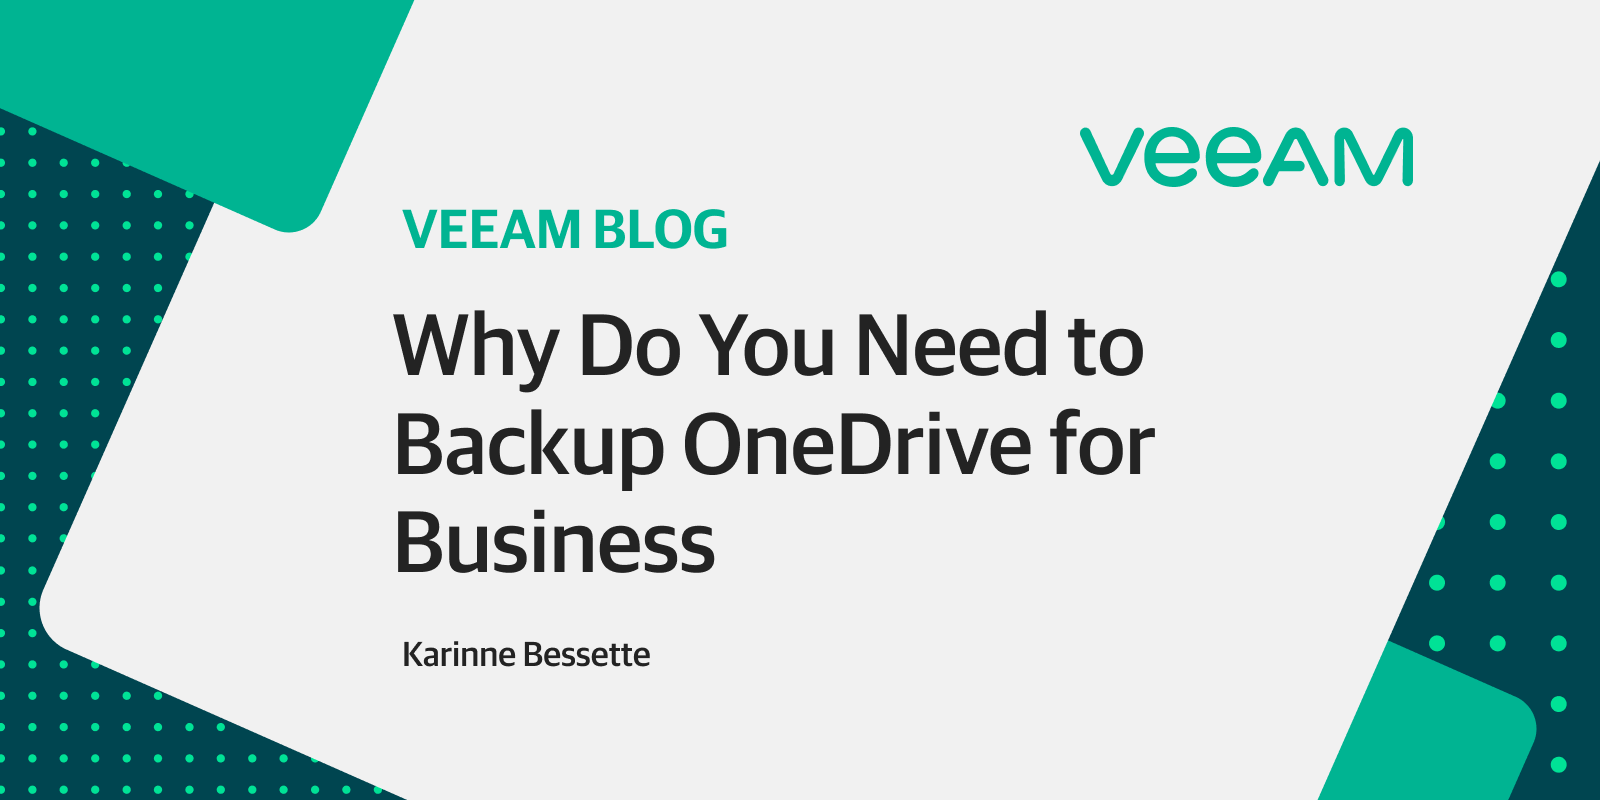 Why backup OneDrive for Business